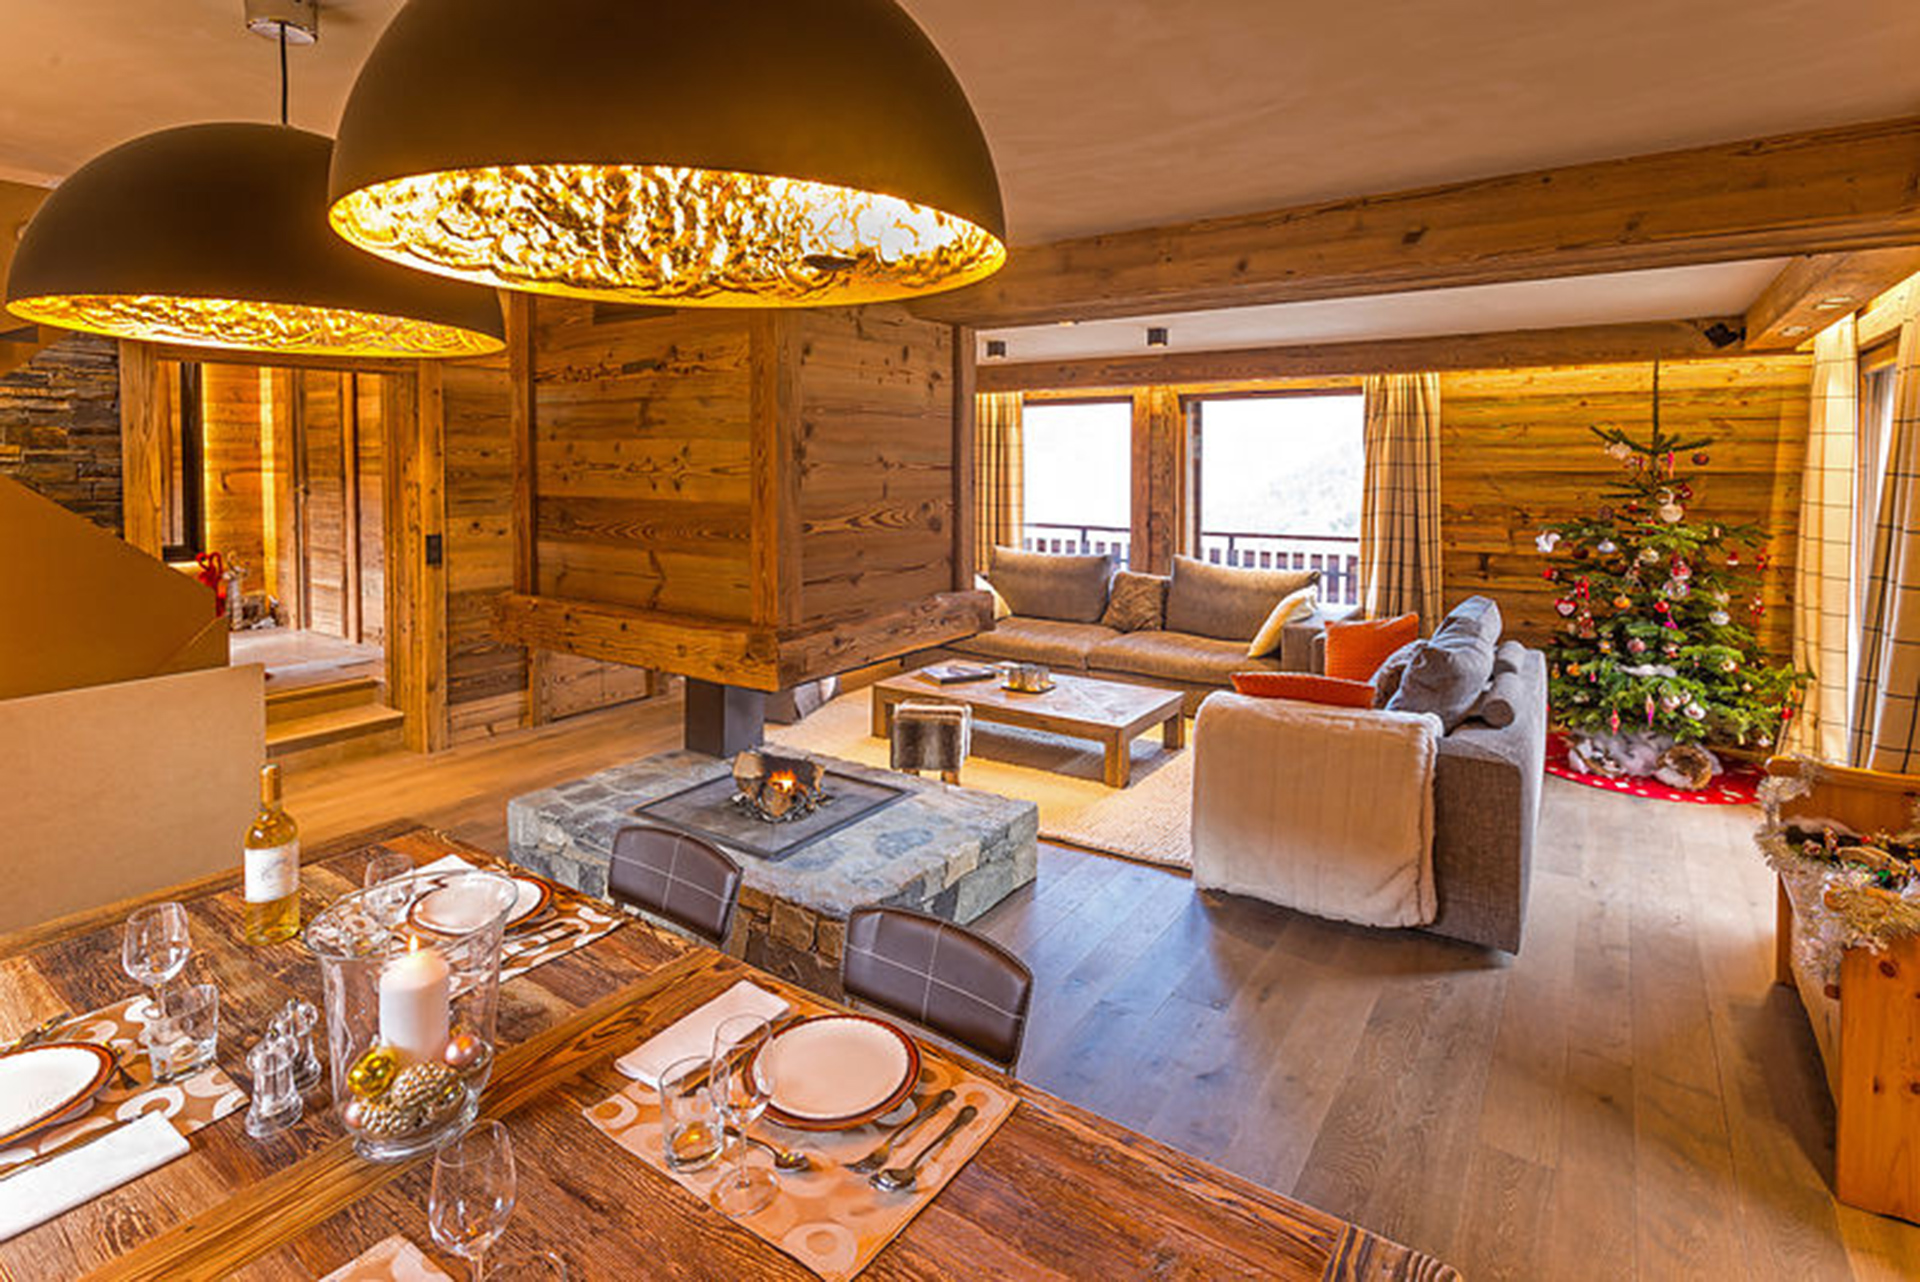 RENOVATION AND LAYOUT OF A MOUNTAIN CHALET | Amevet